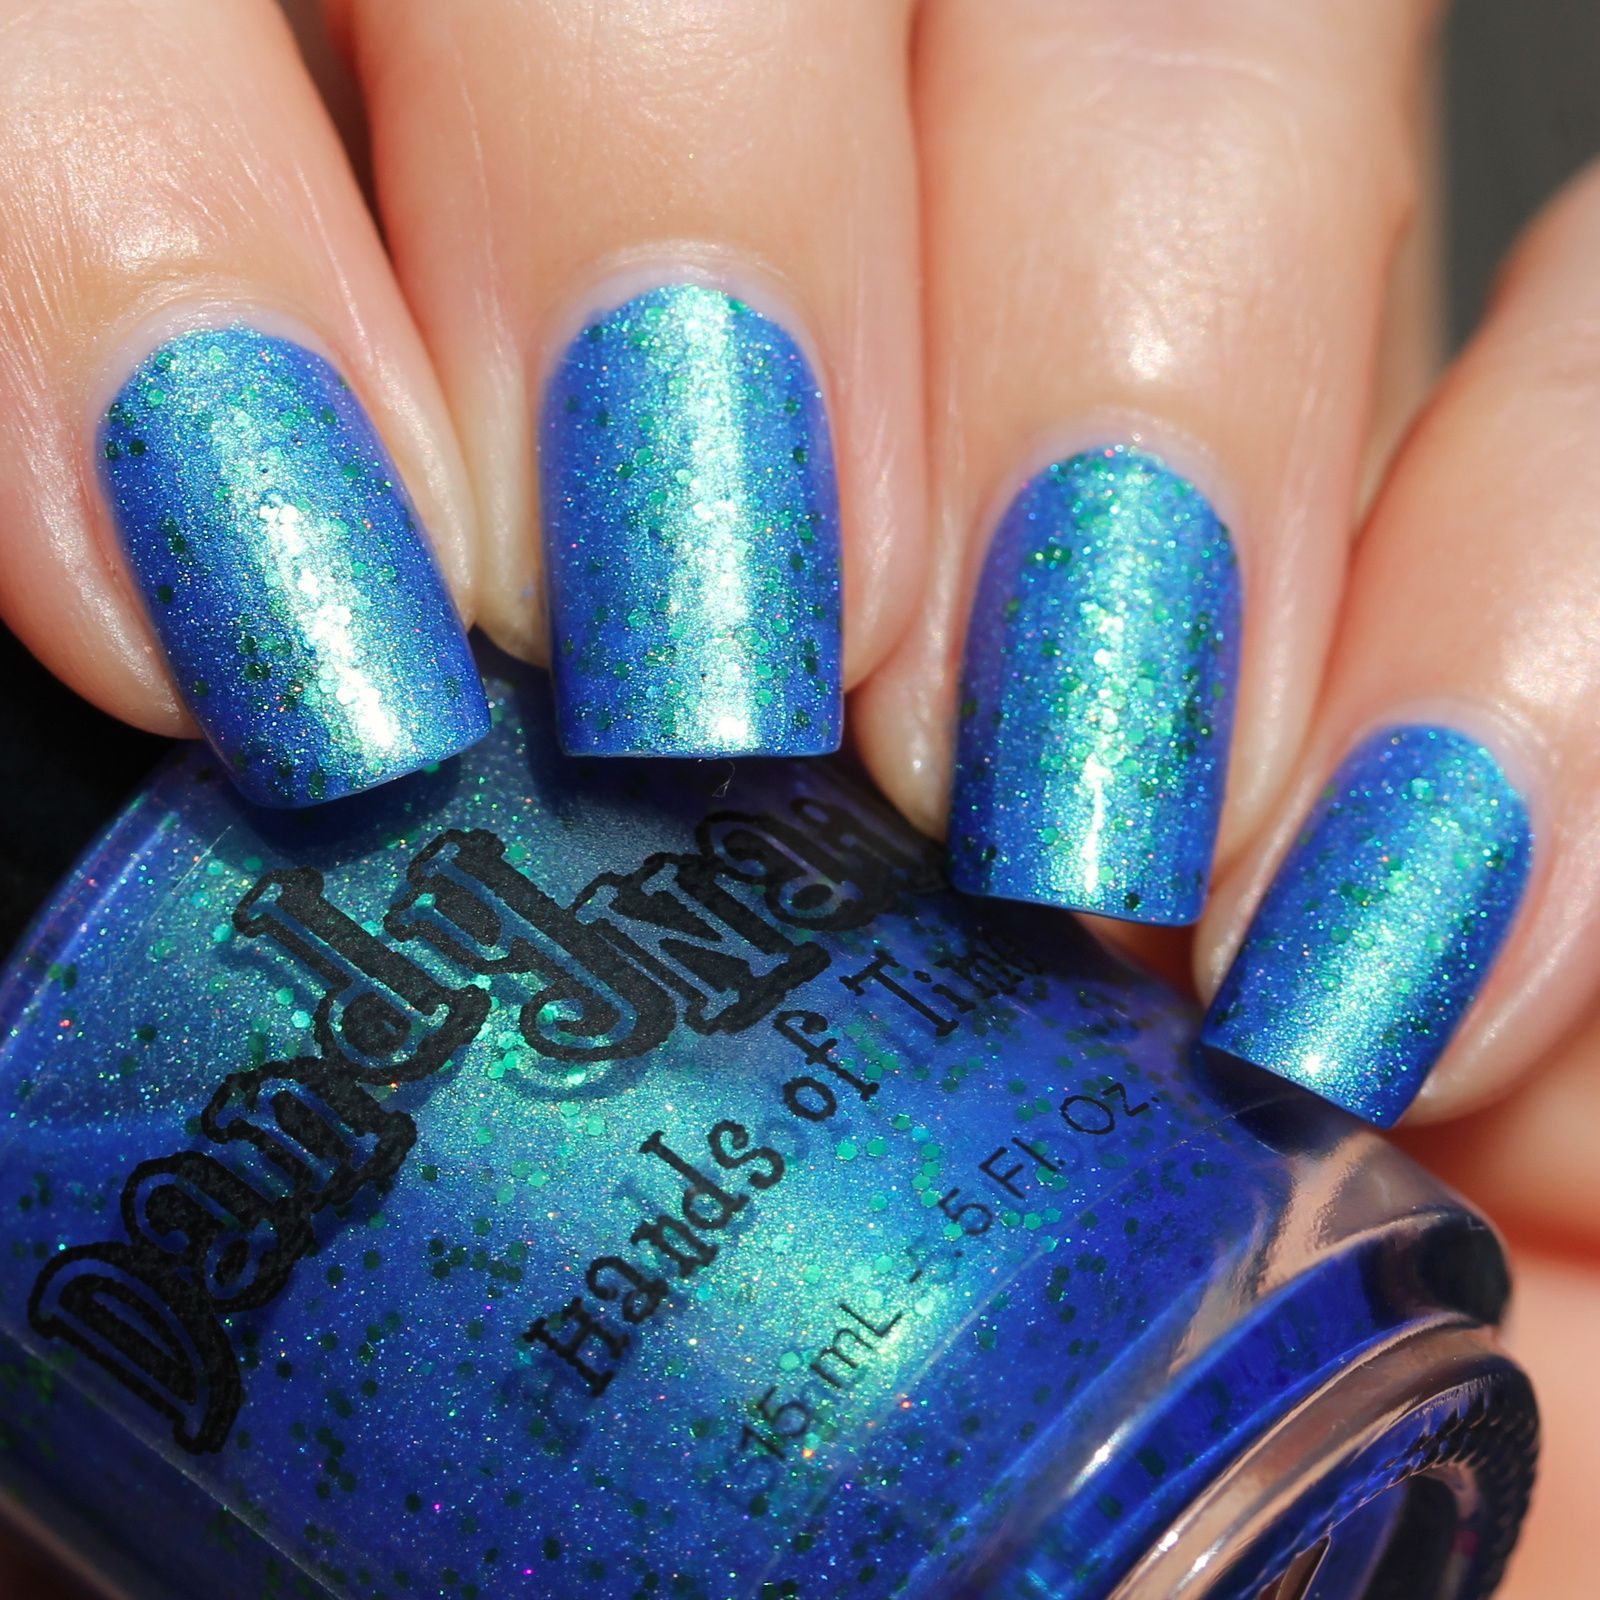 Sally Hansen Complete Care 4-in-1 Extra Moisturizing Nail Treatment / Dandy Nails Hands of Time / HK Girl Top Coat